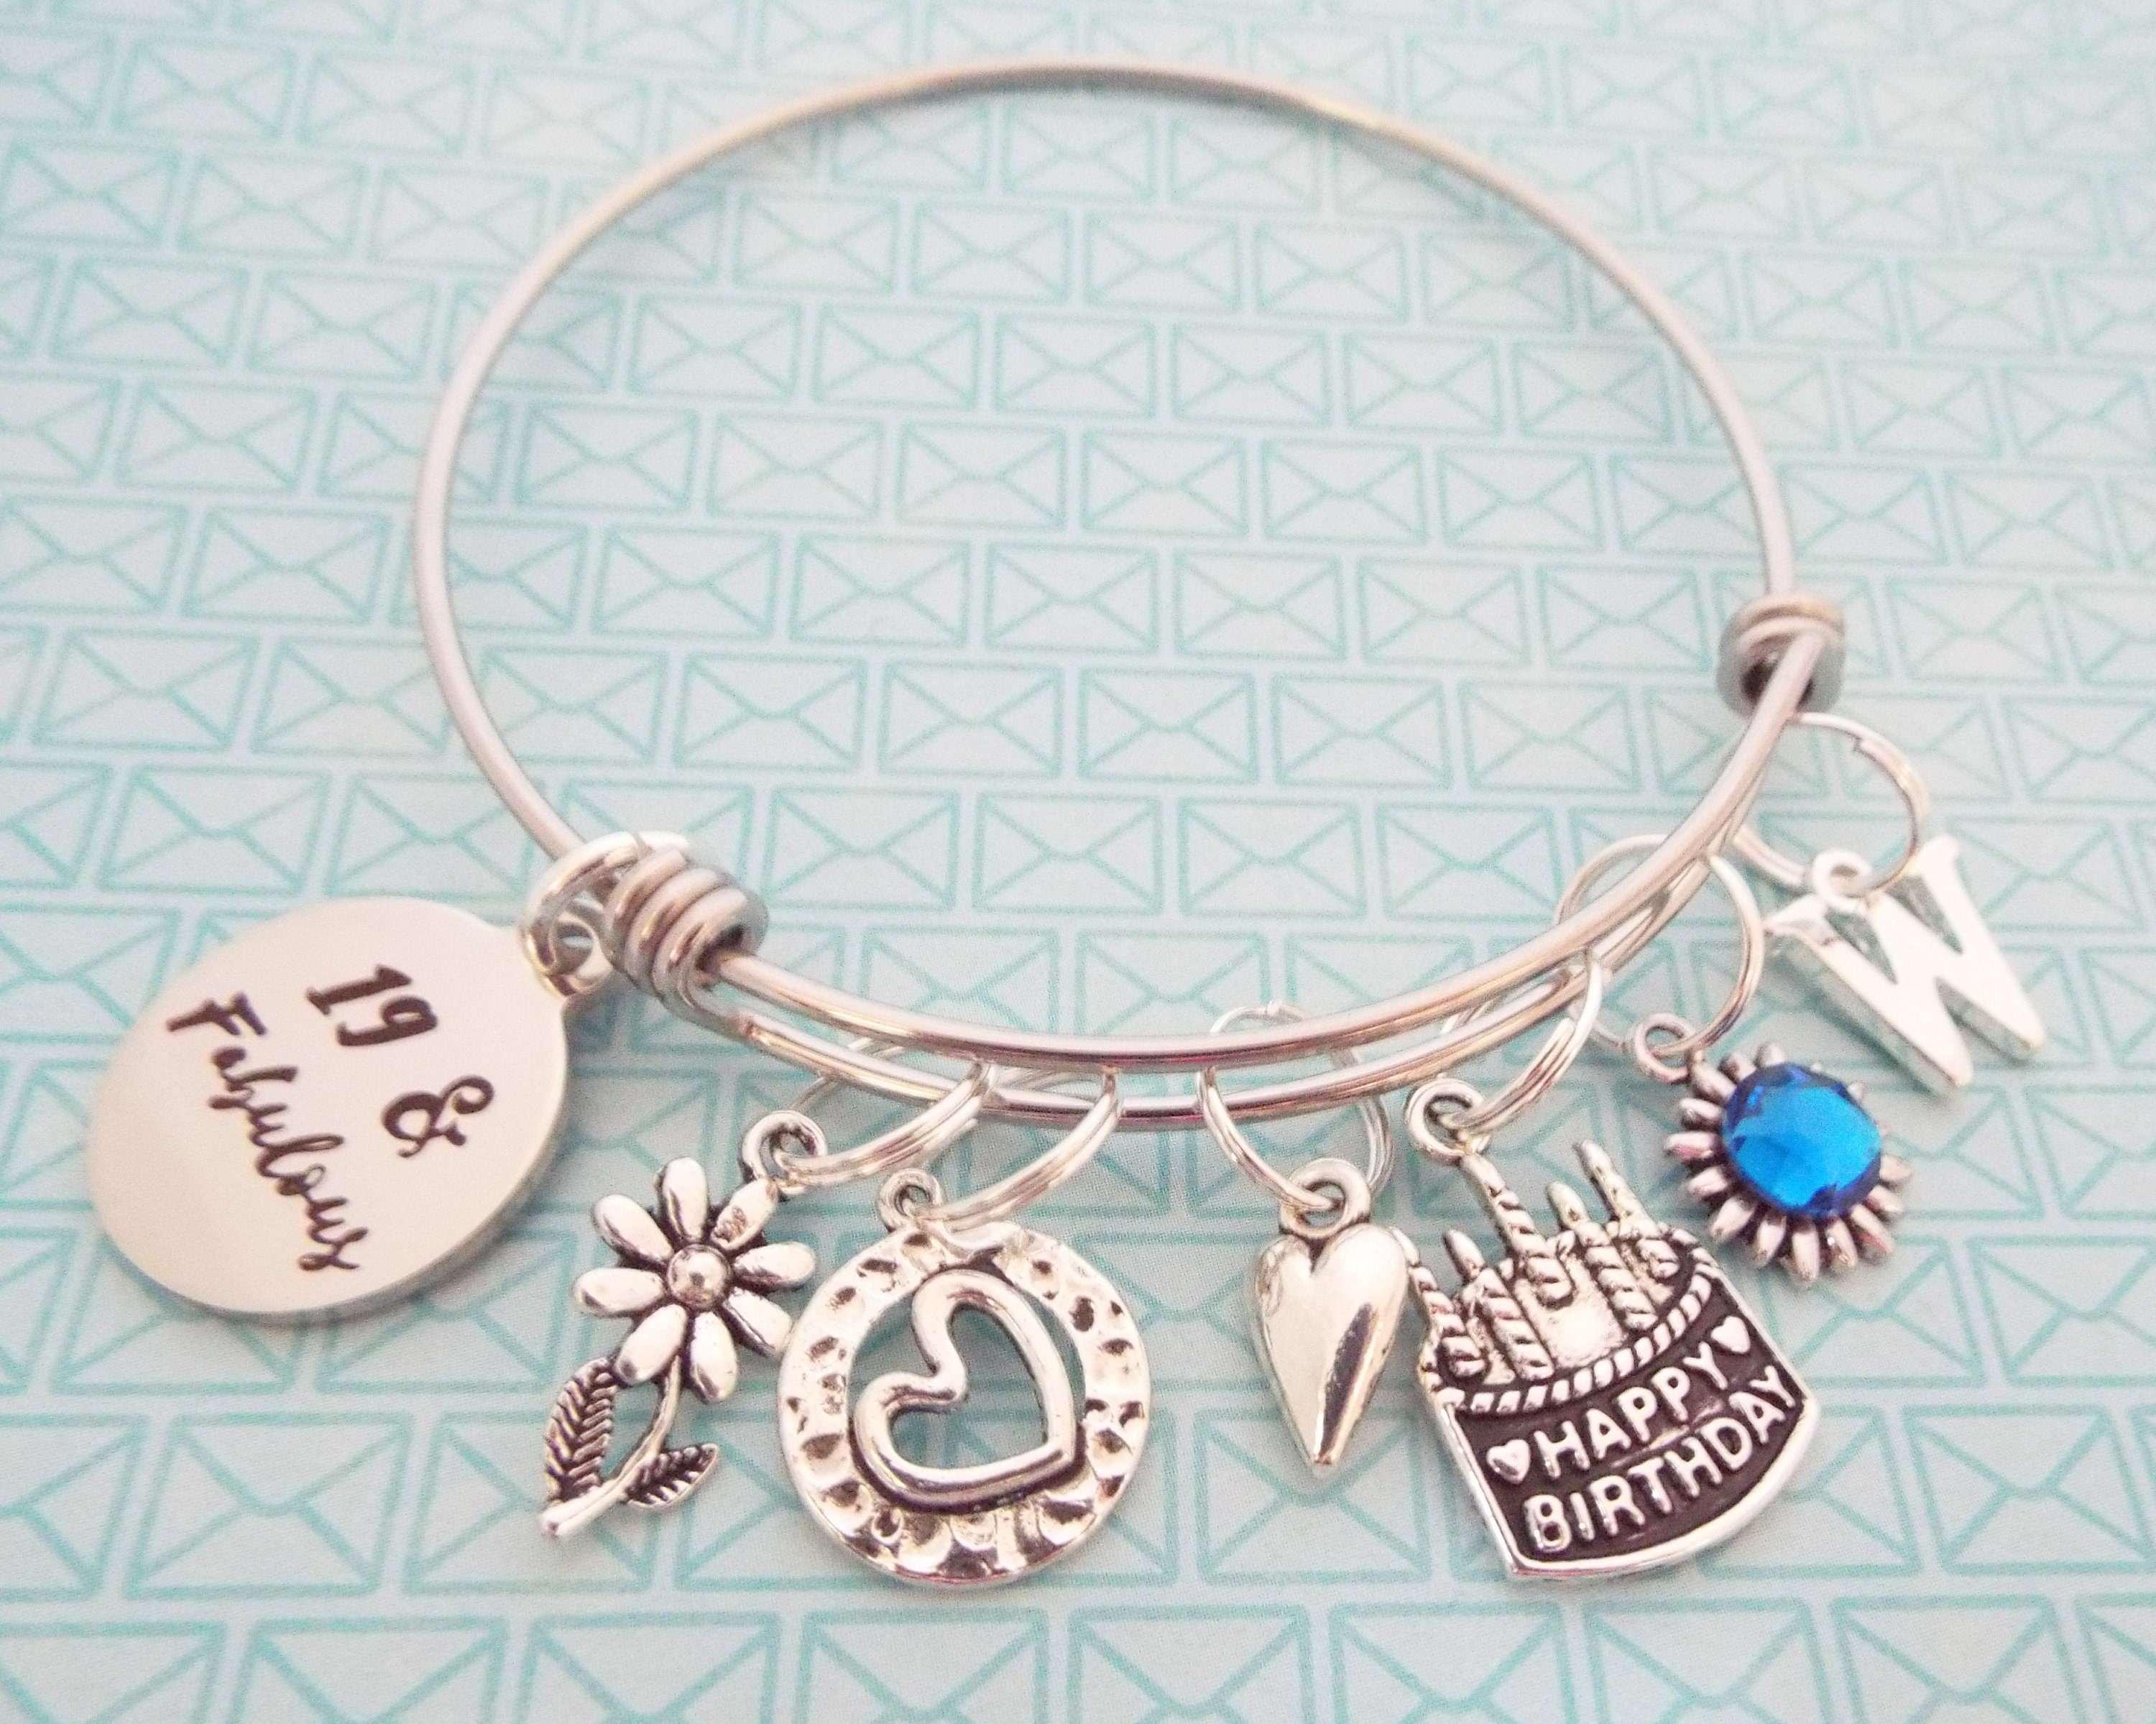 Girls 19th Birthday Gift Charm Bracelet For Teenage Girl Personalized Her 19 Year Old